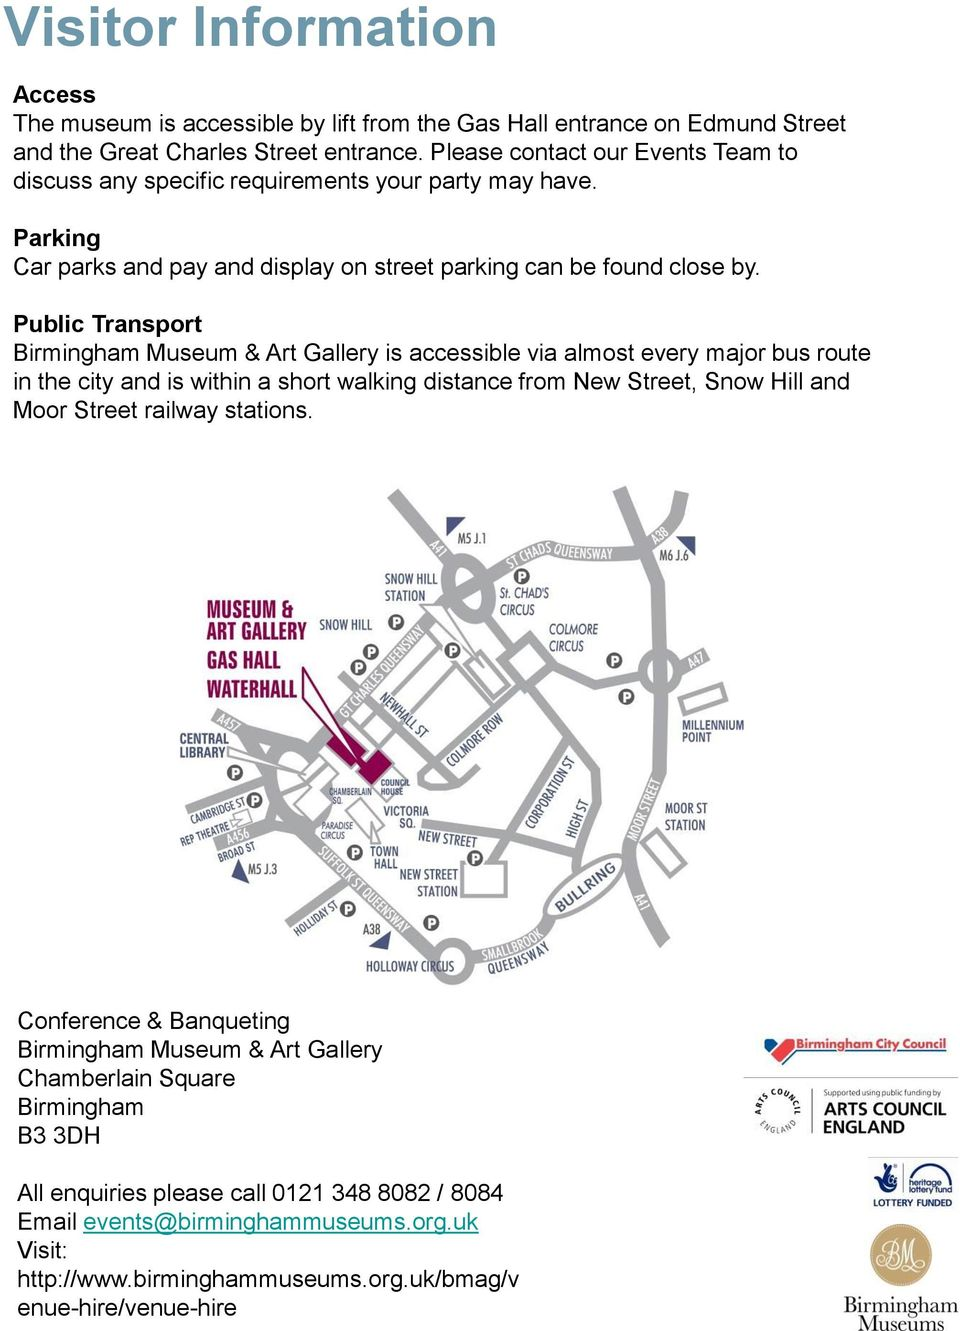 Public Transport Birmingham Museum & Art Gallery is accessible via almost every major bus route in the city and is within a short walking distance from New Street, Snow Hill and Moor Street